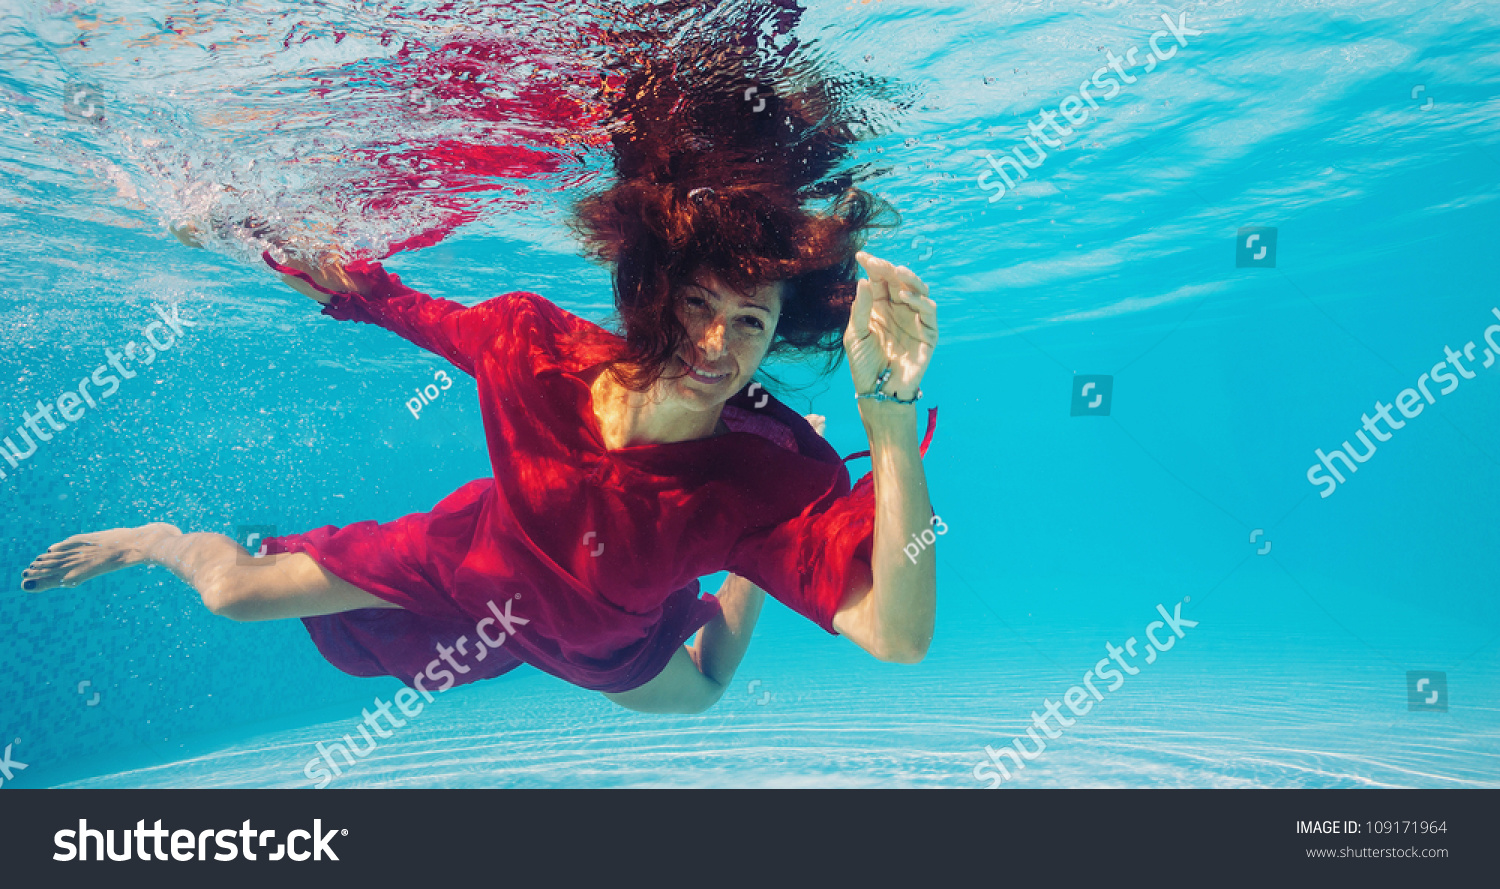 Underwater Woman With Red Dress In Swimming Pool Stock